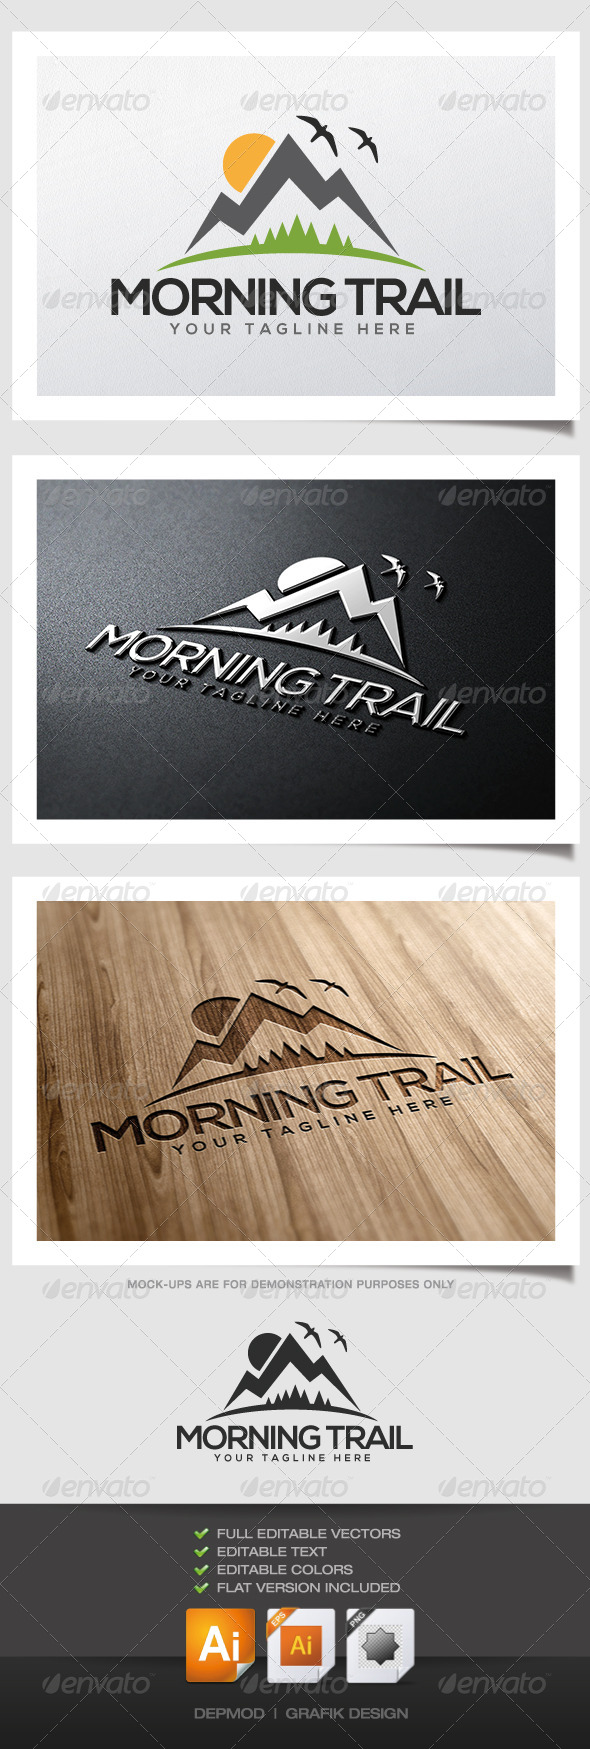 GraphicRiver Morning Trail Logo 4627784